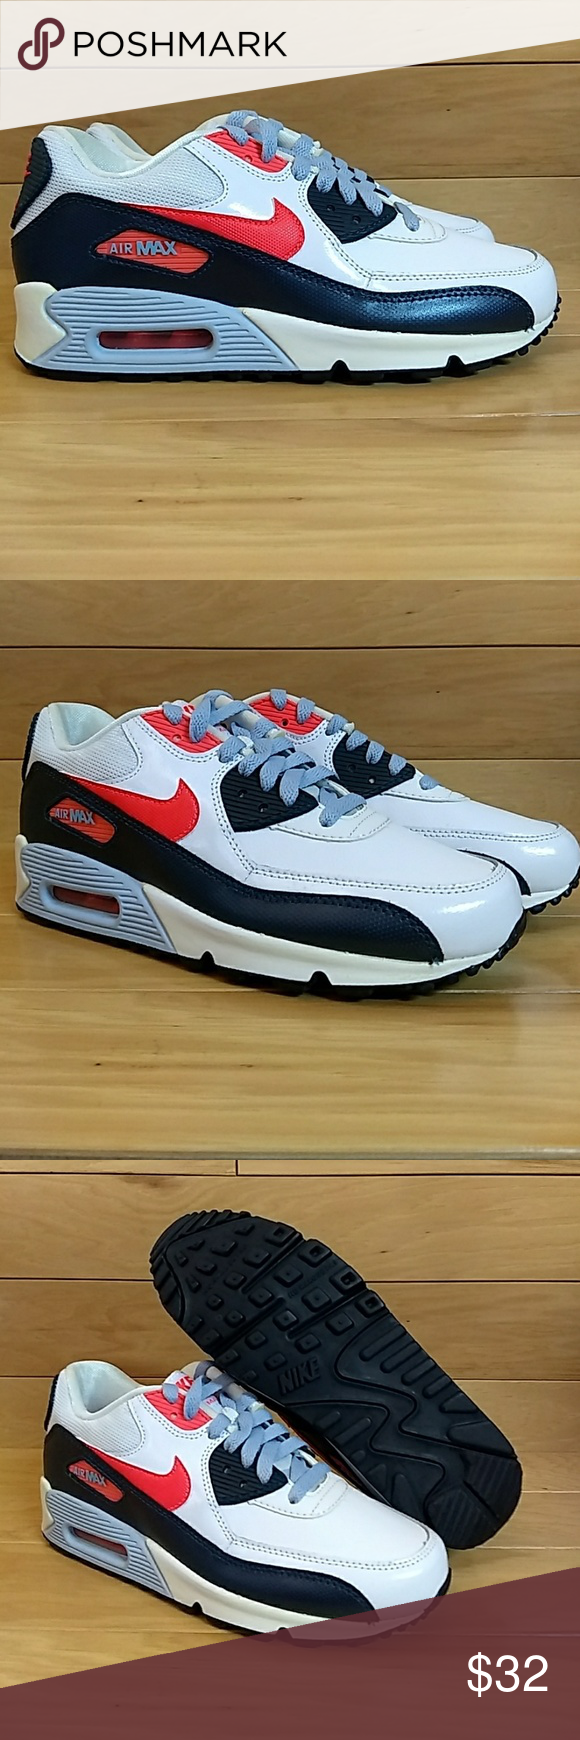 online store b94ee 44b3f Nike Air Max 90 2007 GS White Red Navy Blue 5Y Item  Nike Air Max